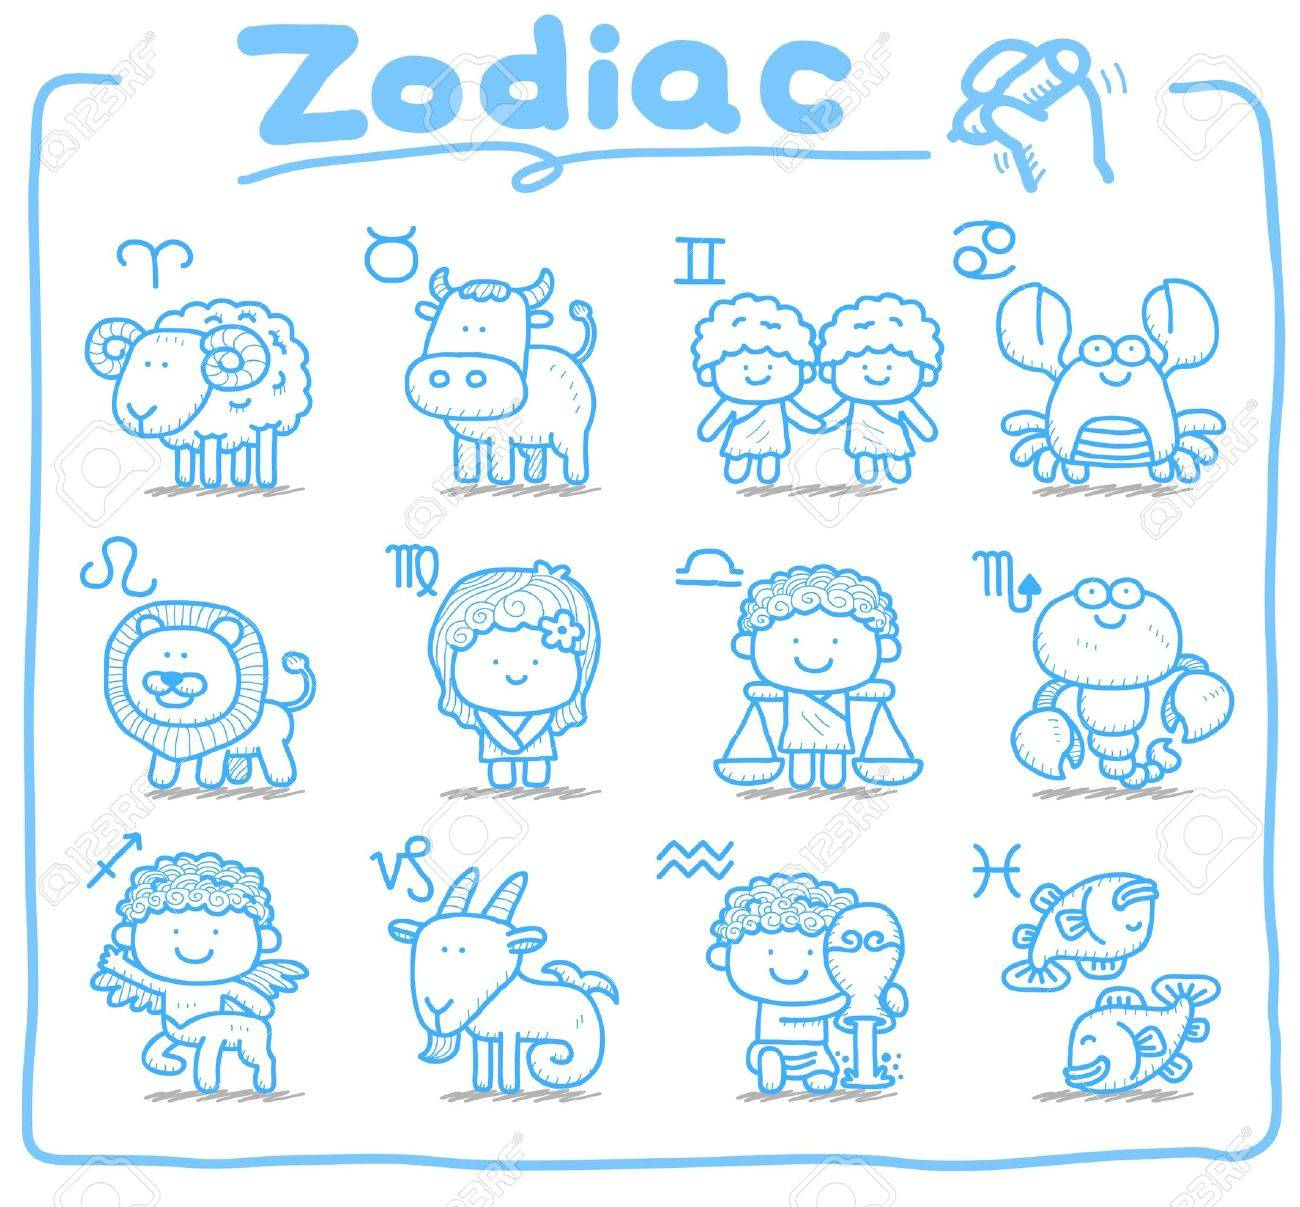 Cute Doodles To Draw For Your Girlfriend hand drawn  doodle zodiac icon